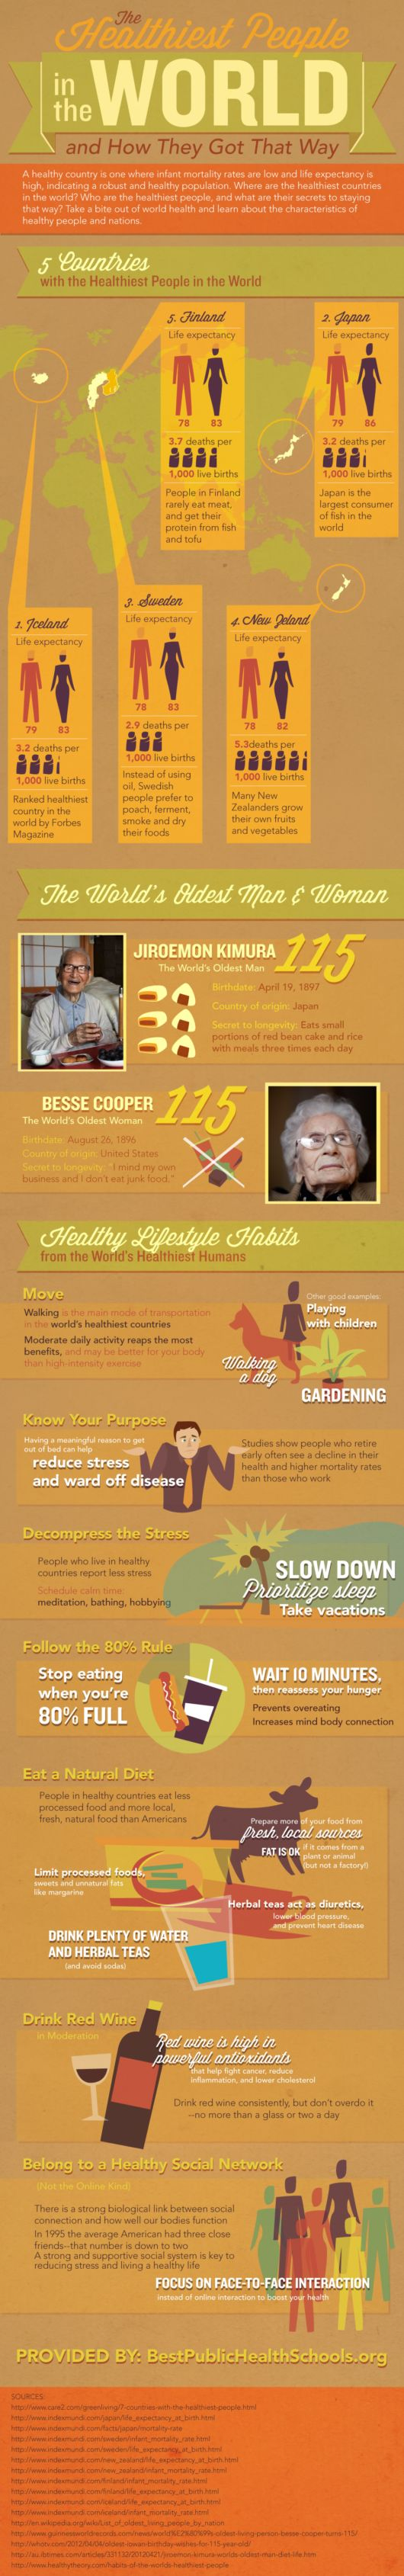 The Healthiest People In The World